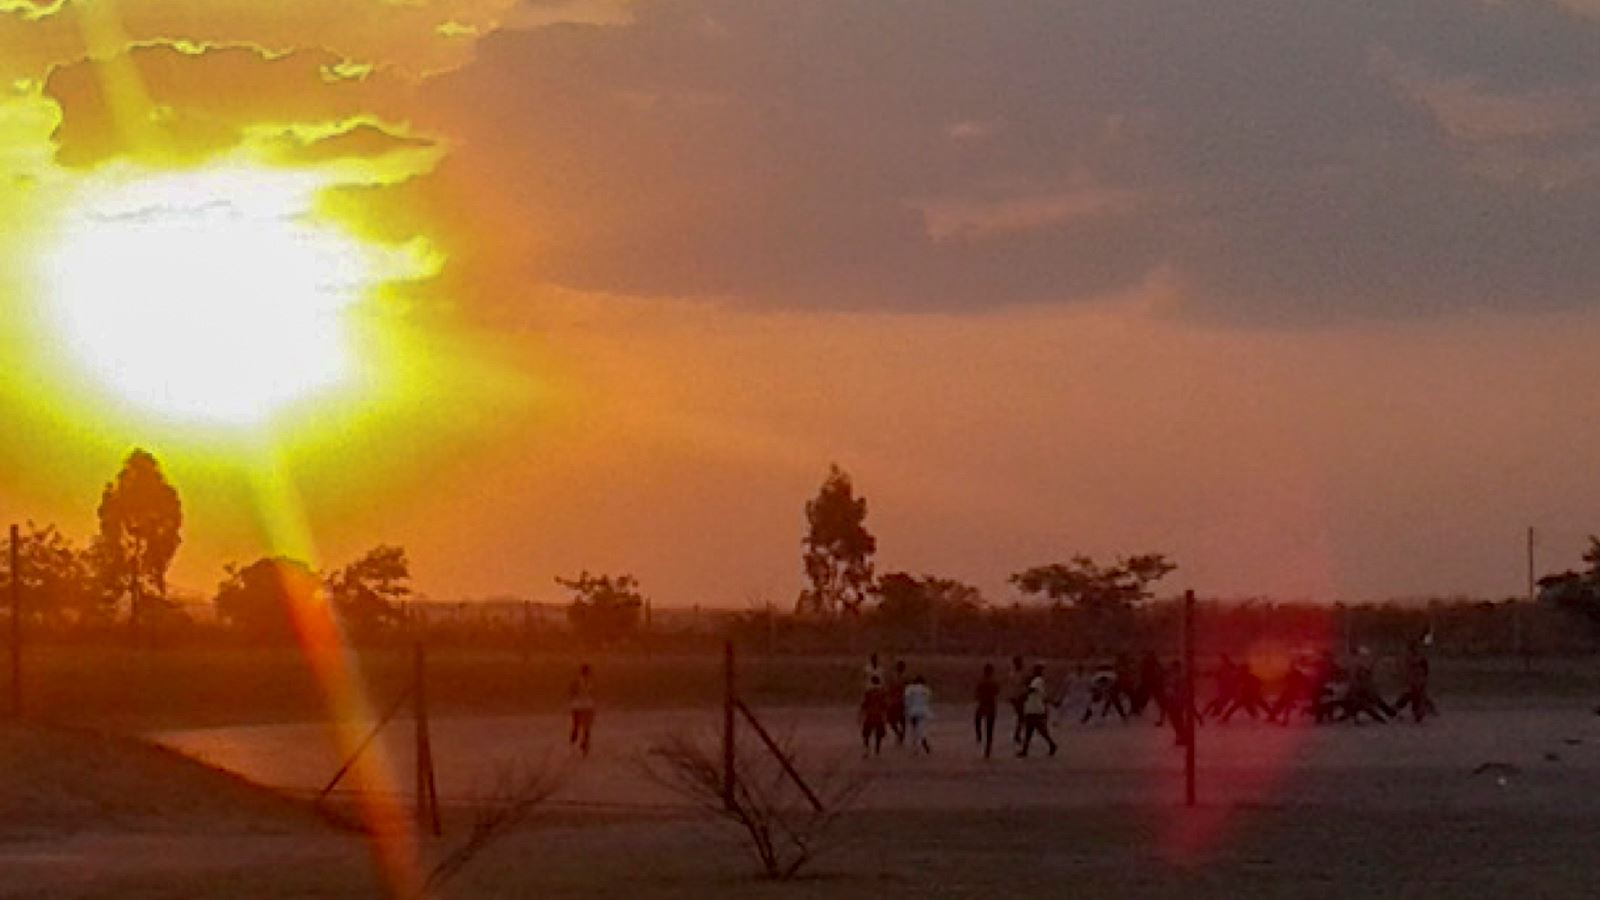 People playing football in Zambia at sunset